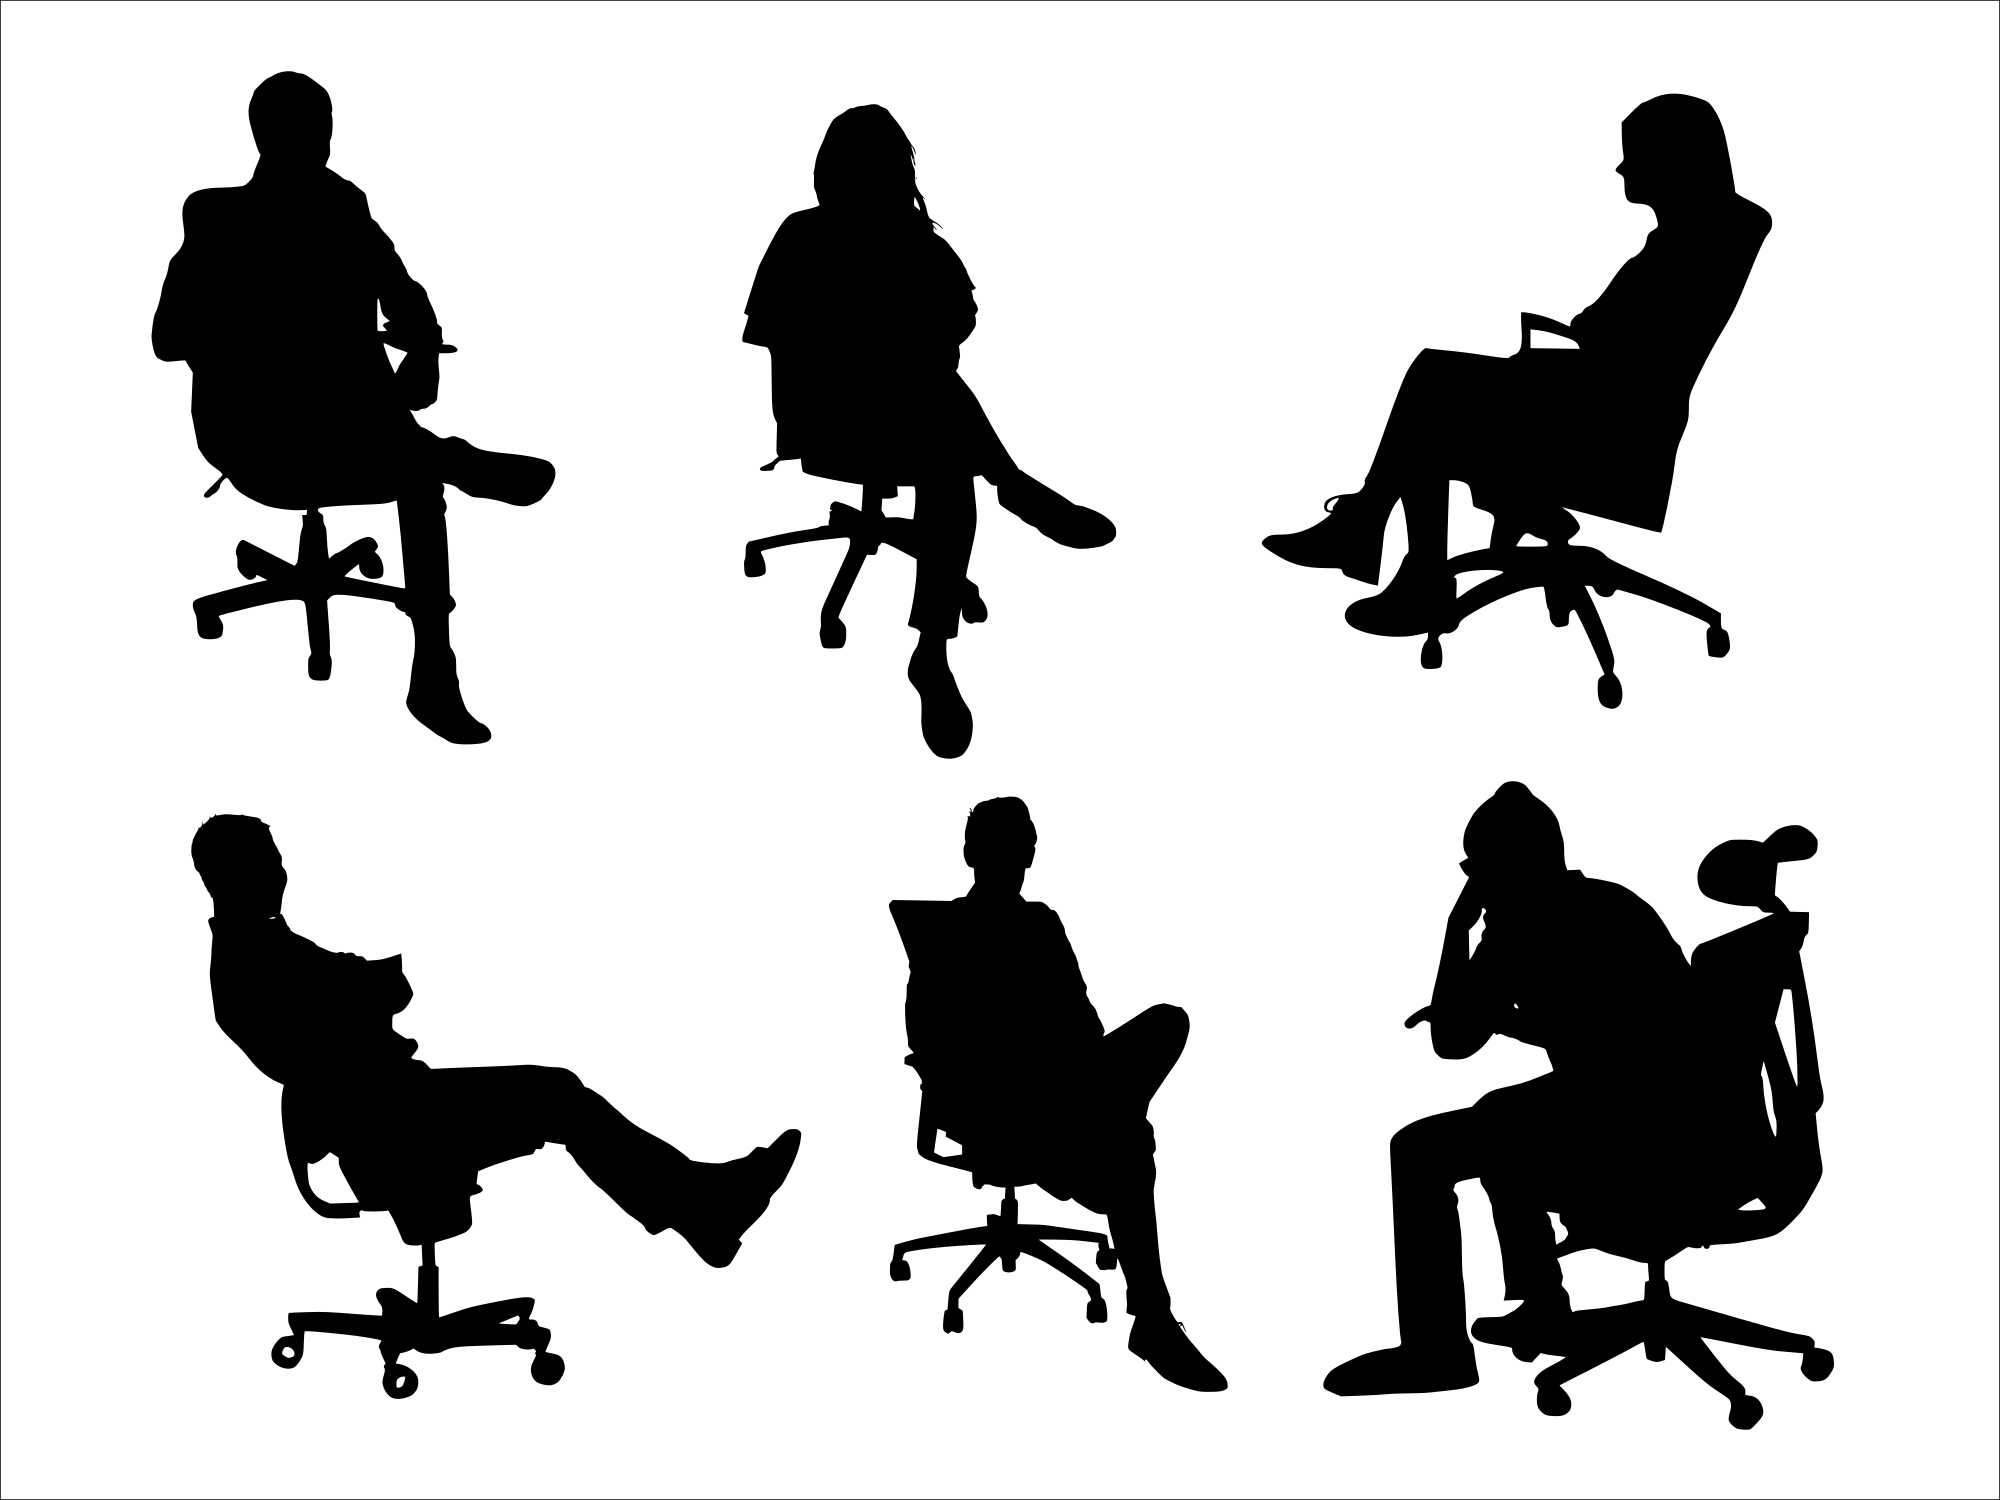 6-office-chair-sitting-silhouette-cover.jpg